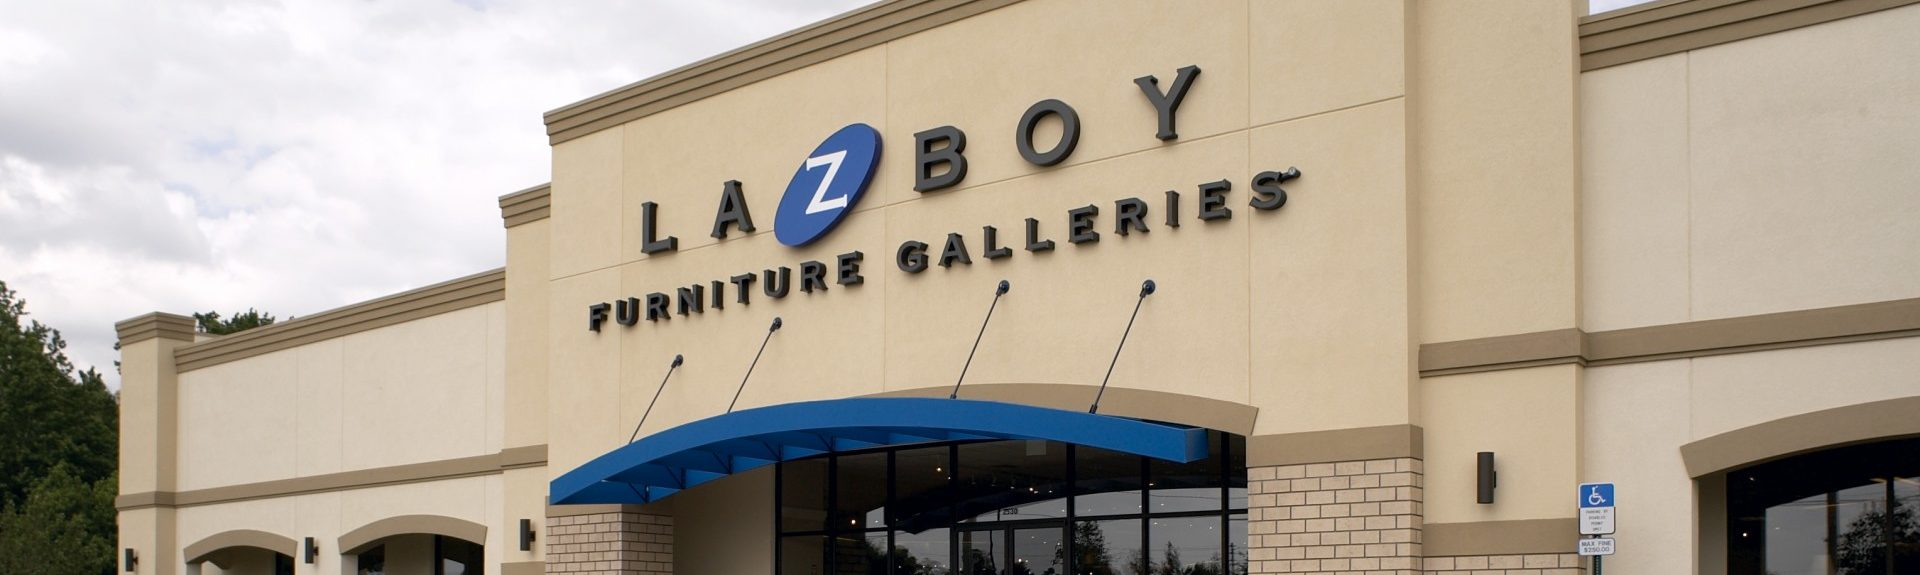 Furniture Store In Charlotte Nc La Z Boy Furniture Galleries